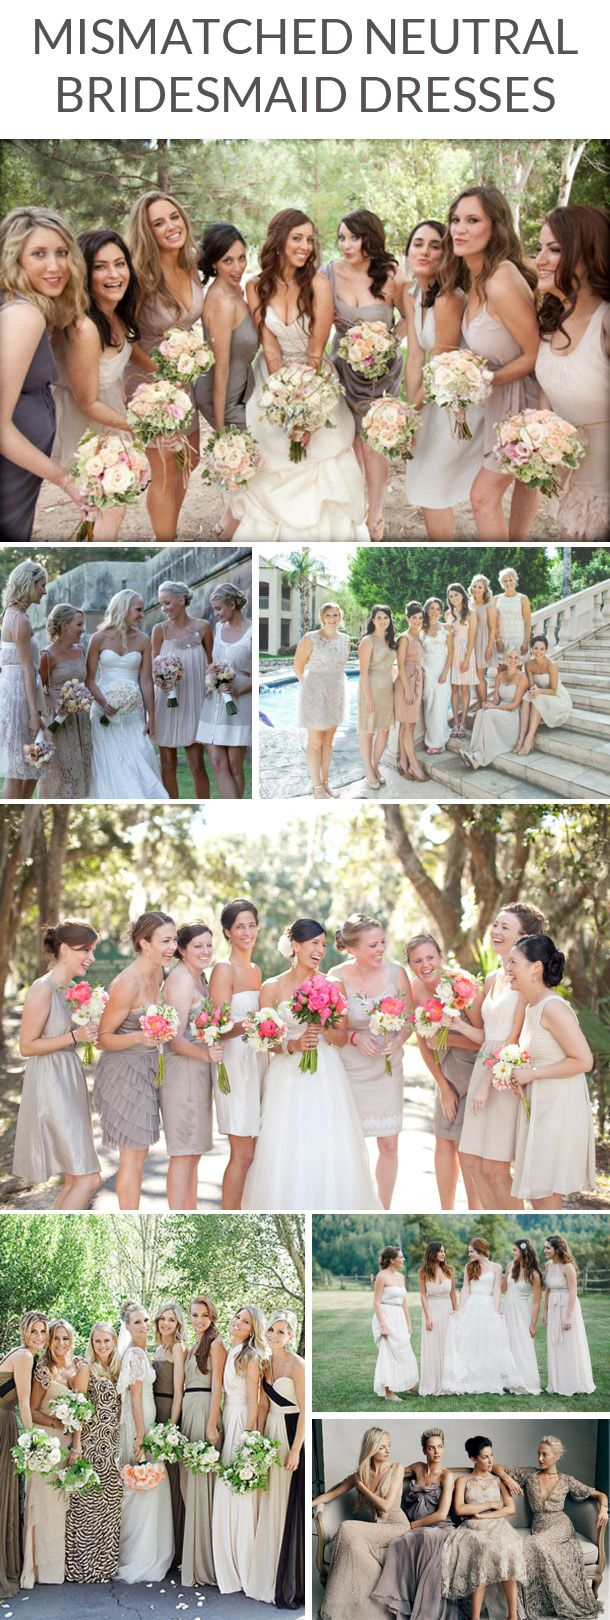 25 cute neutral bridesmaid dresses ideas on pinterest neutral mismatched neutral bridesmaid dresses ombrellifo Image collections